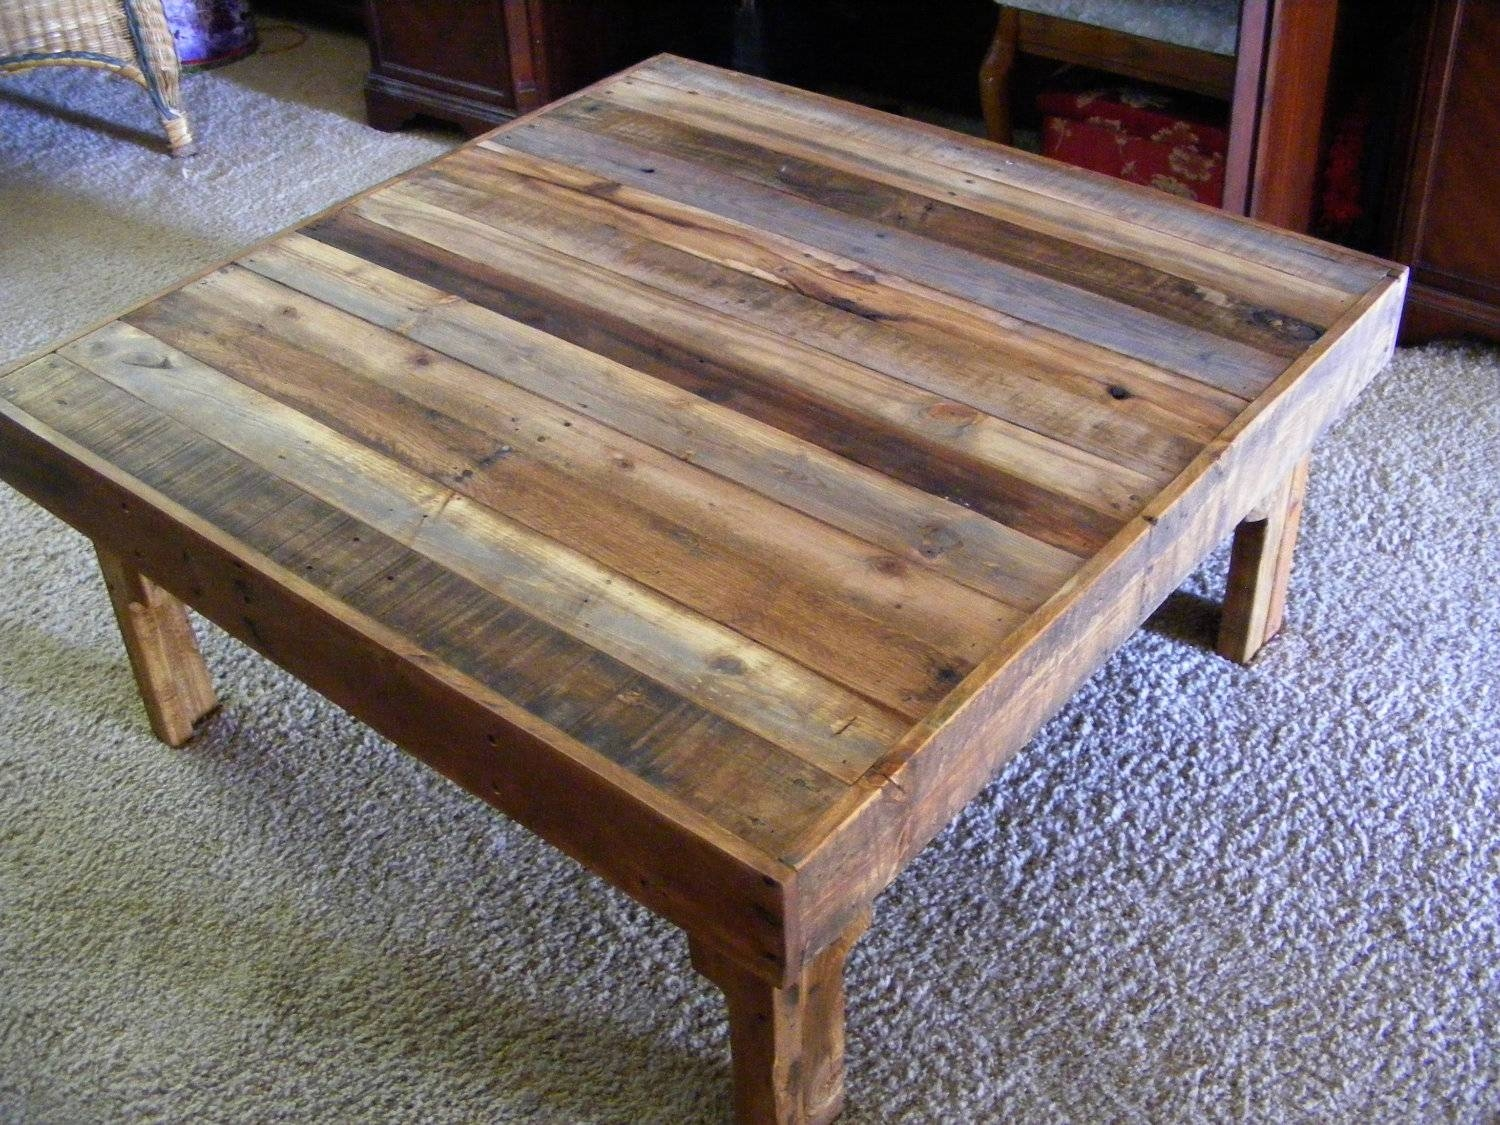 Delighful Rustic Coffee Tables Table L With Inspiration inside Rustic Coffee Tables (Image 5 of 14)